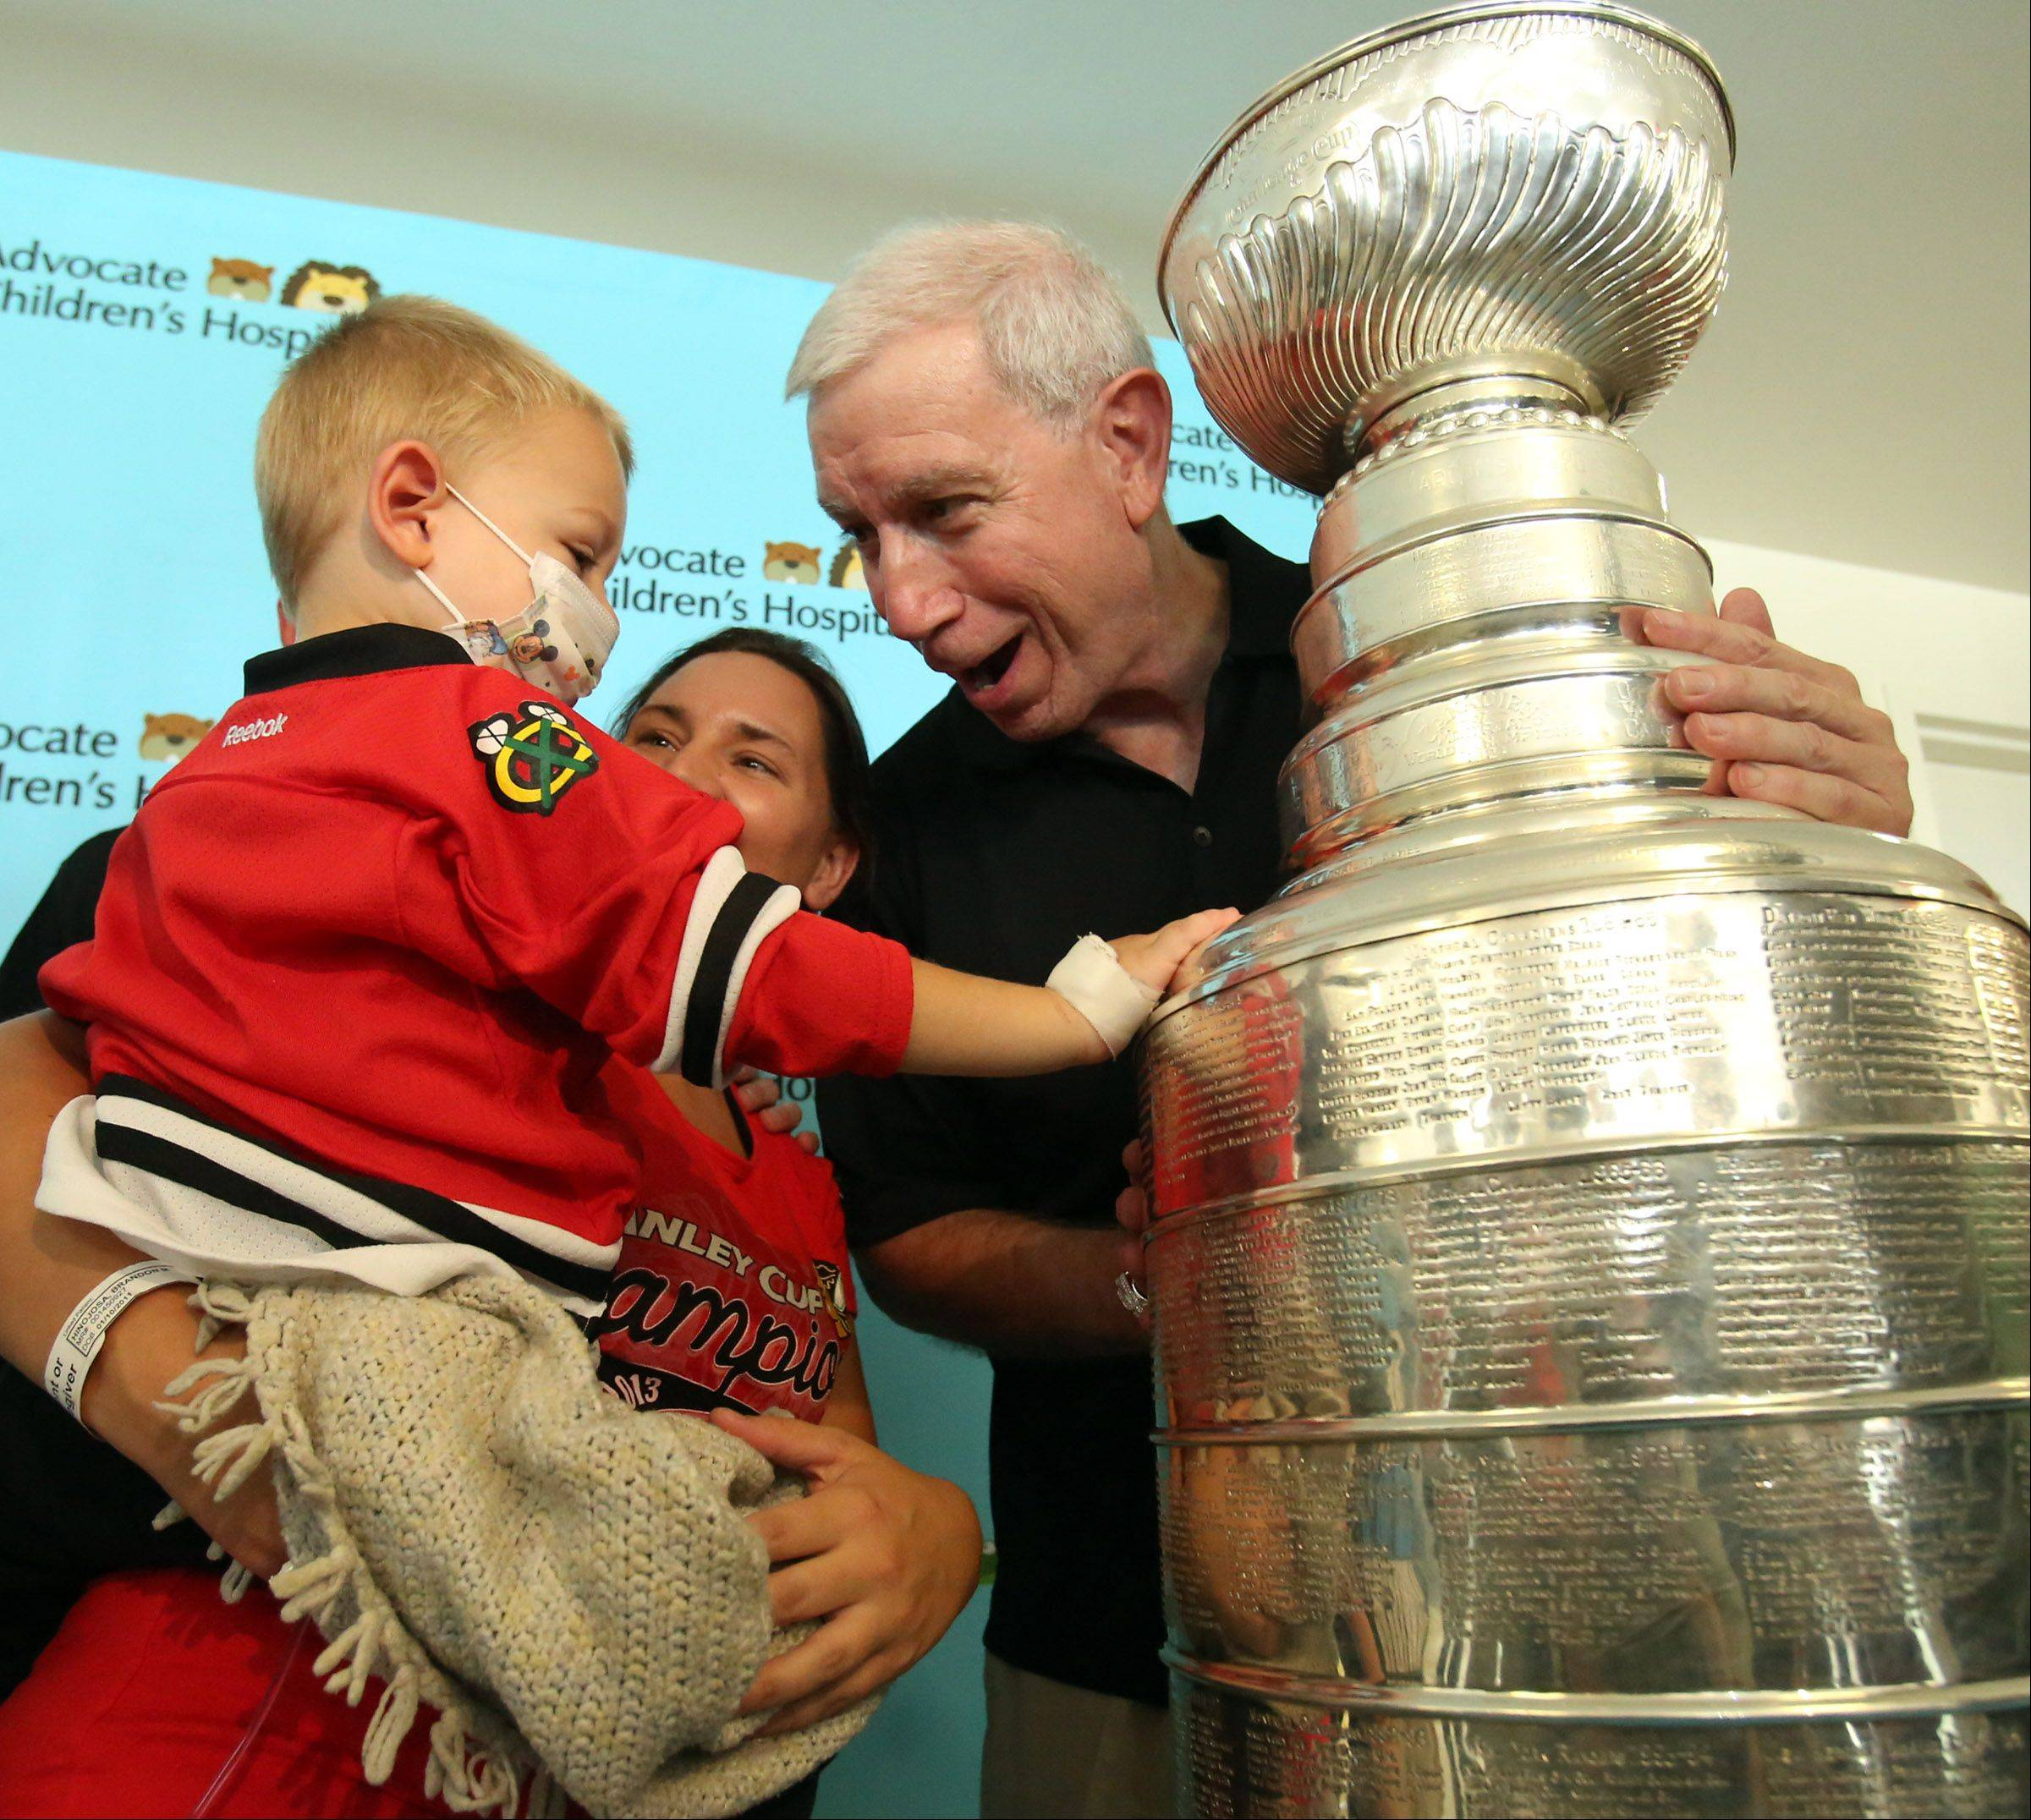 Two-year-old Brandon Hinojosa of Lake Zurich, who was diagnosed with leukemia two days ago, was a little shy while touching the Stanley Cup and posing for pictures with John McDonough, president and CEO of the Chicago Blackhawks. He's being held by his mother, Brandy, in the waiting area Saturday at Advocate Children's Hospital in Park Ridge.